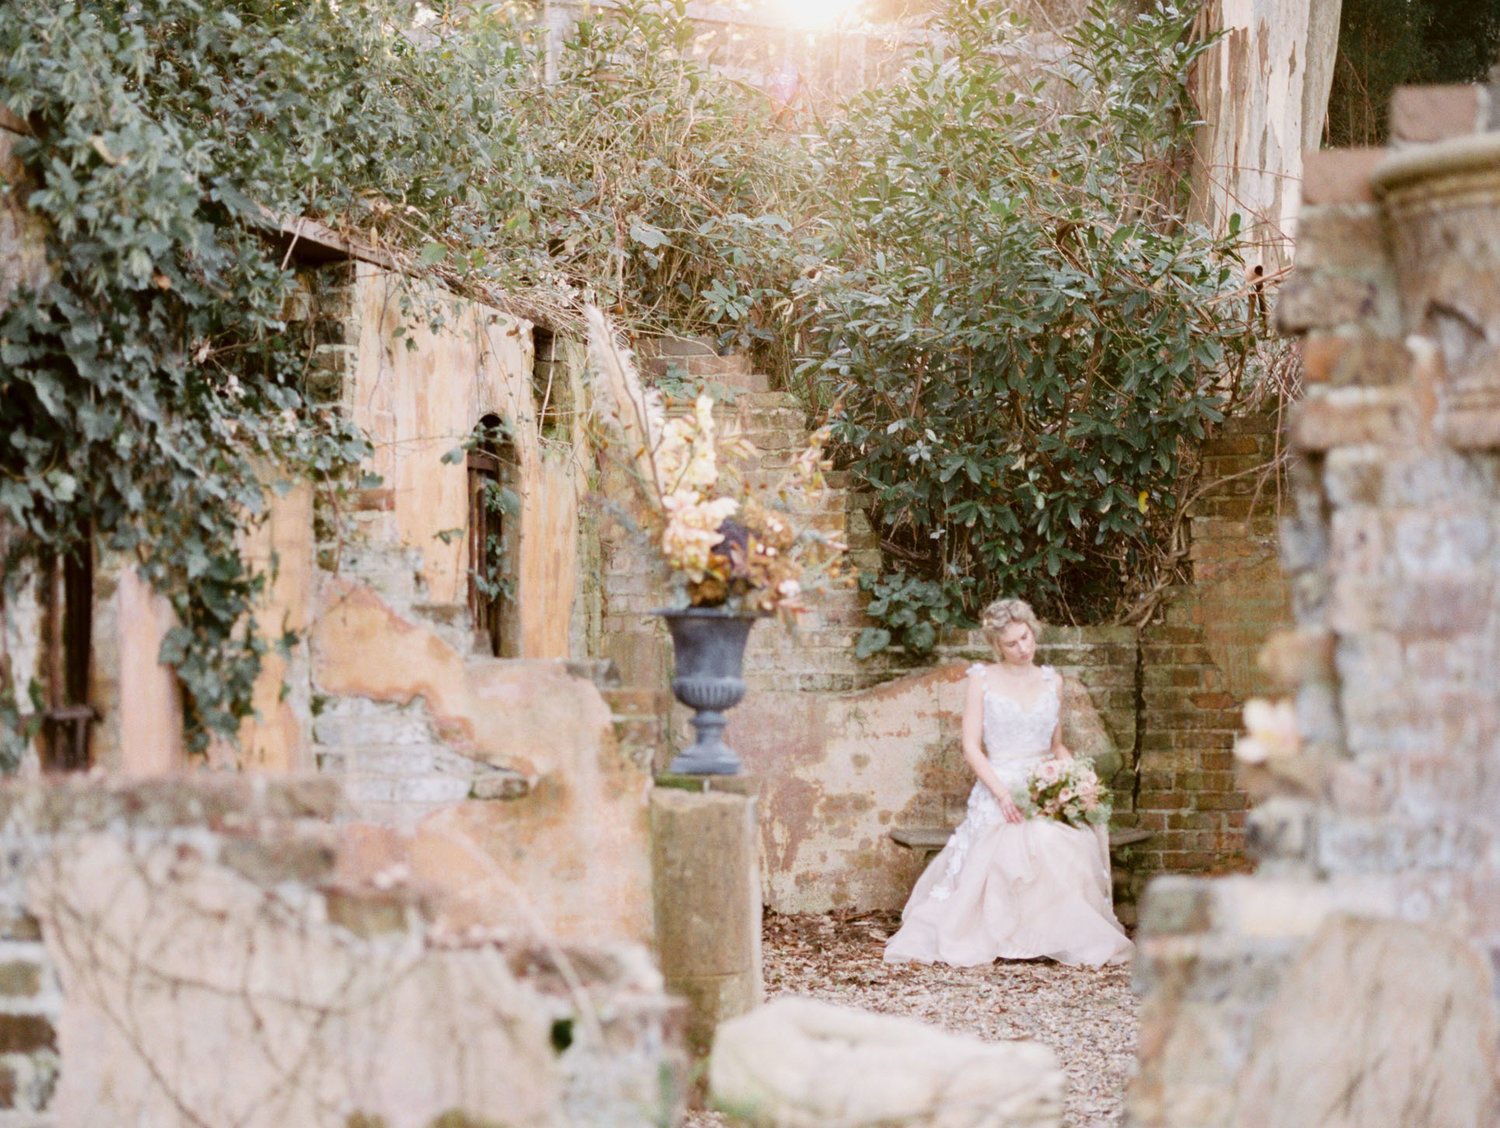 Hopewood House - Romantic Winter Wedding Shoot - Lilli Kad Photography - Shot - Ruins Botanicals 2.jpeg